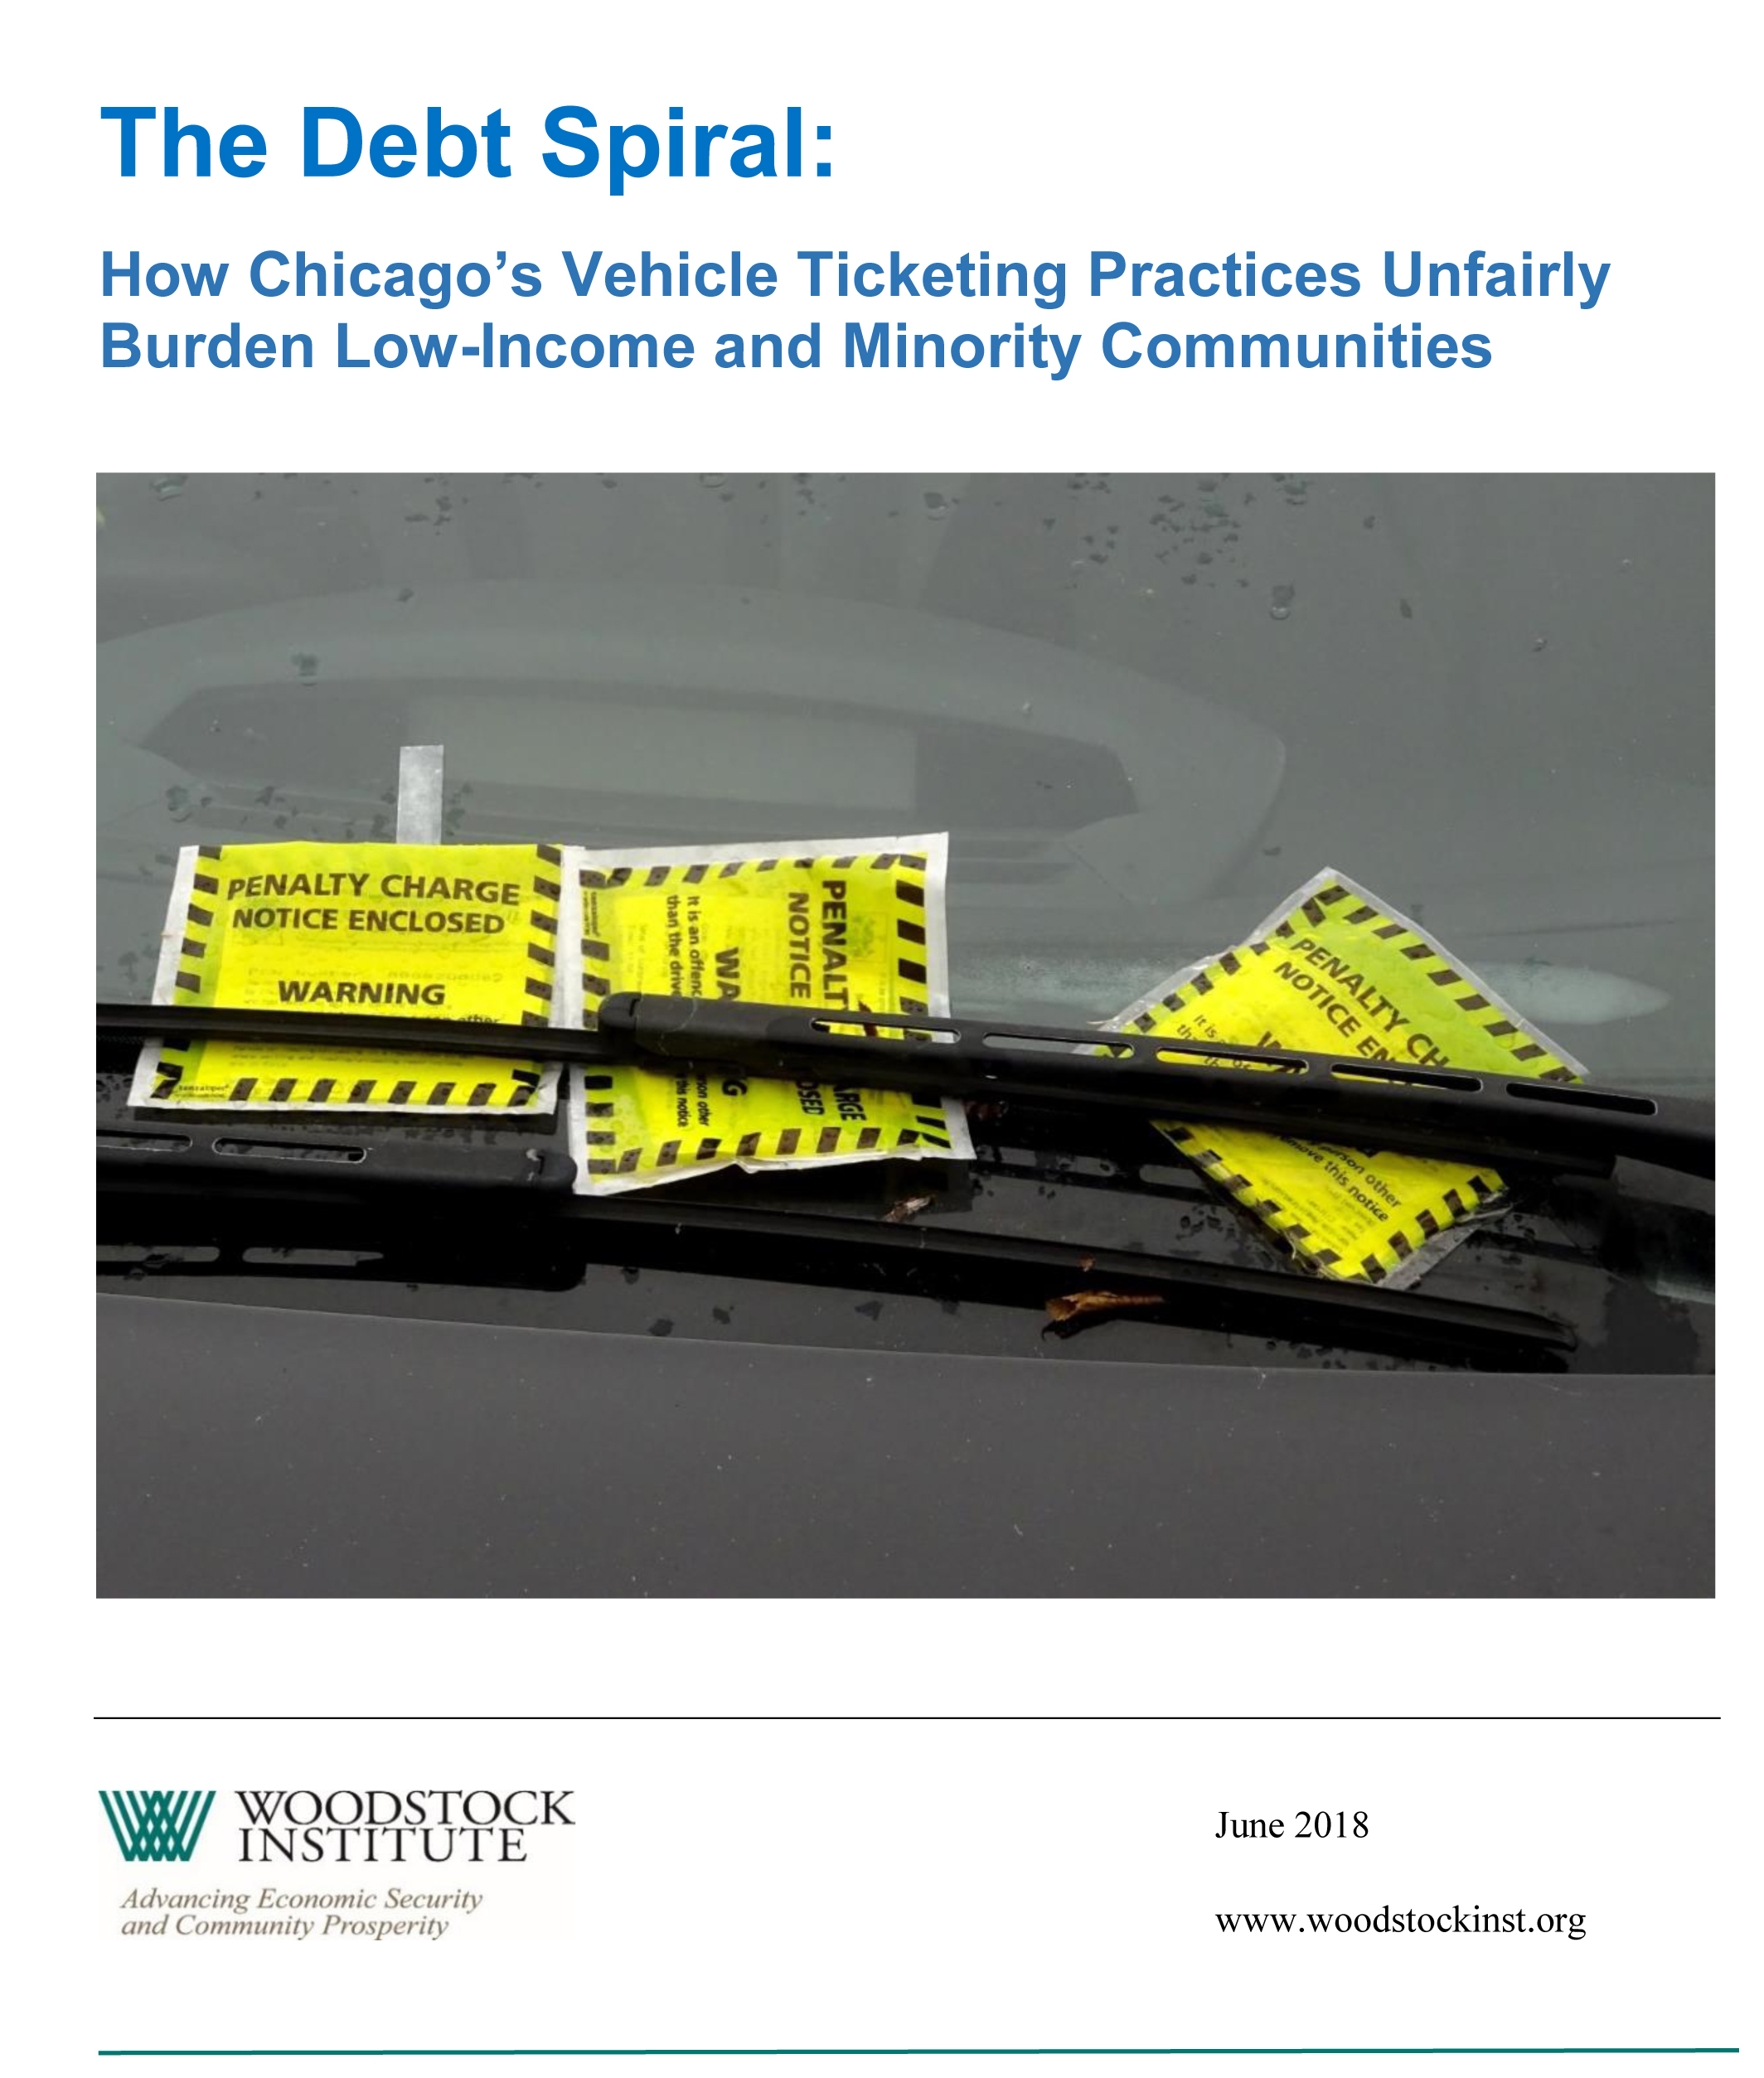 The Debt Spiral: How Chicago's Vehicle Ticketing Practices